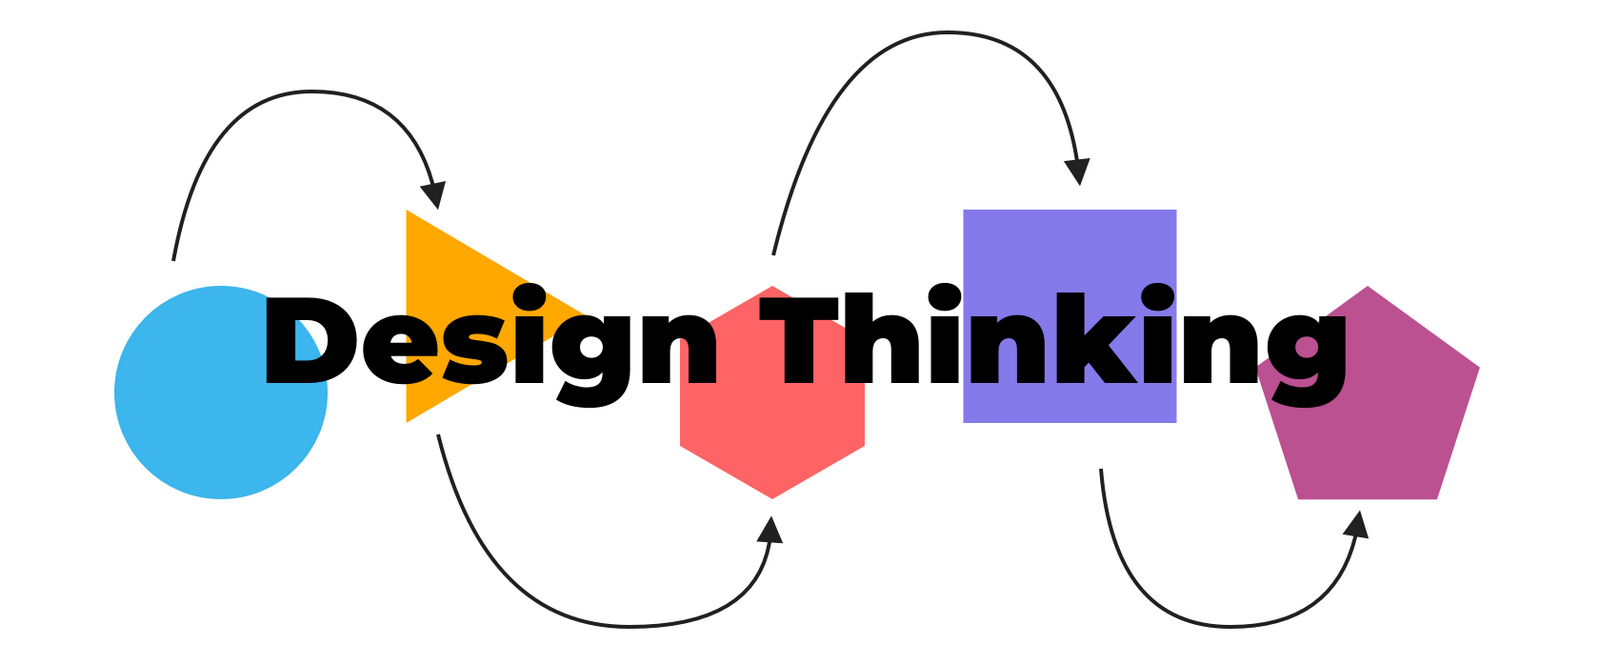 What is Design thinking and why is it important? - Sheet2